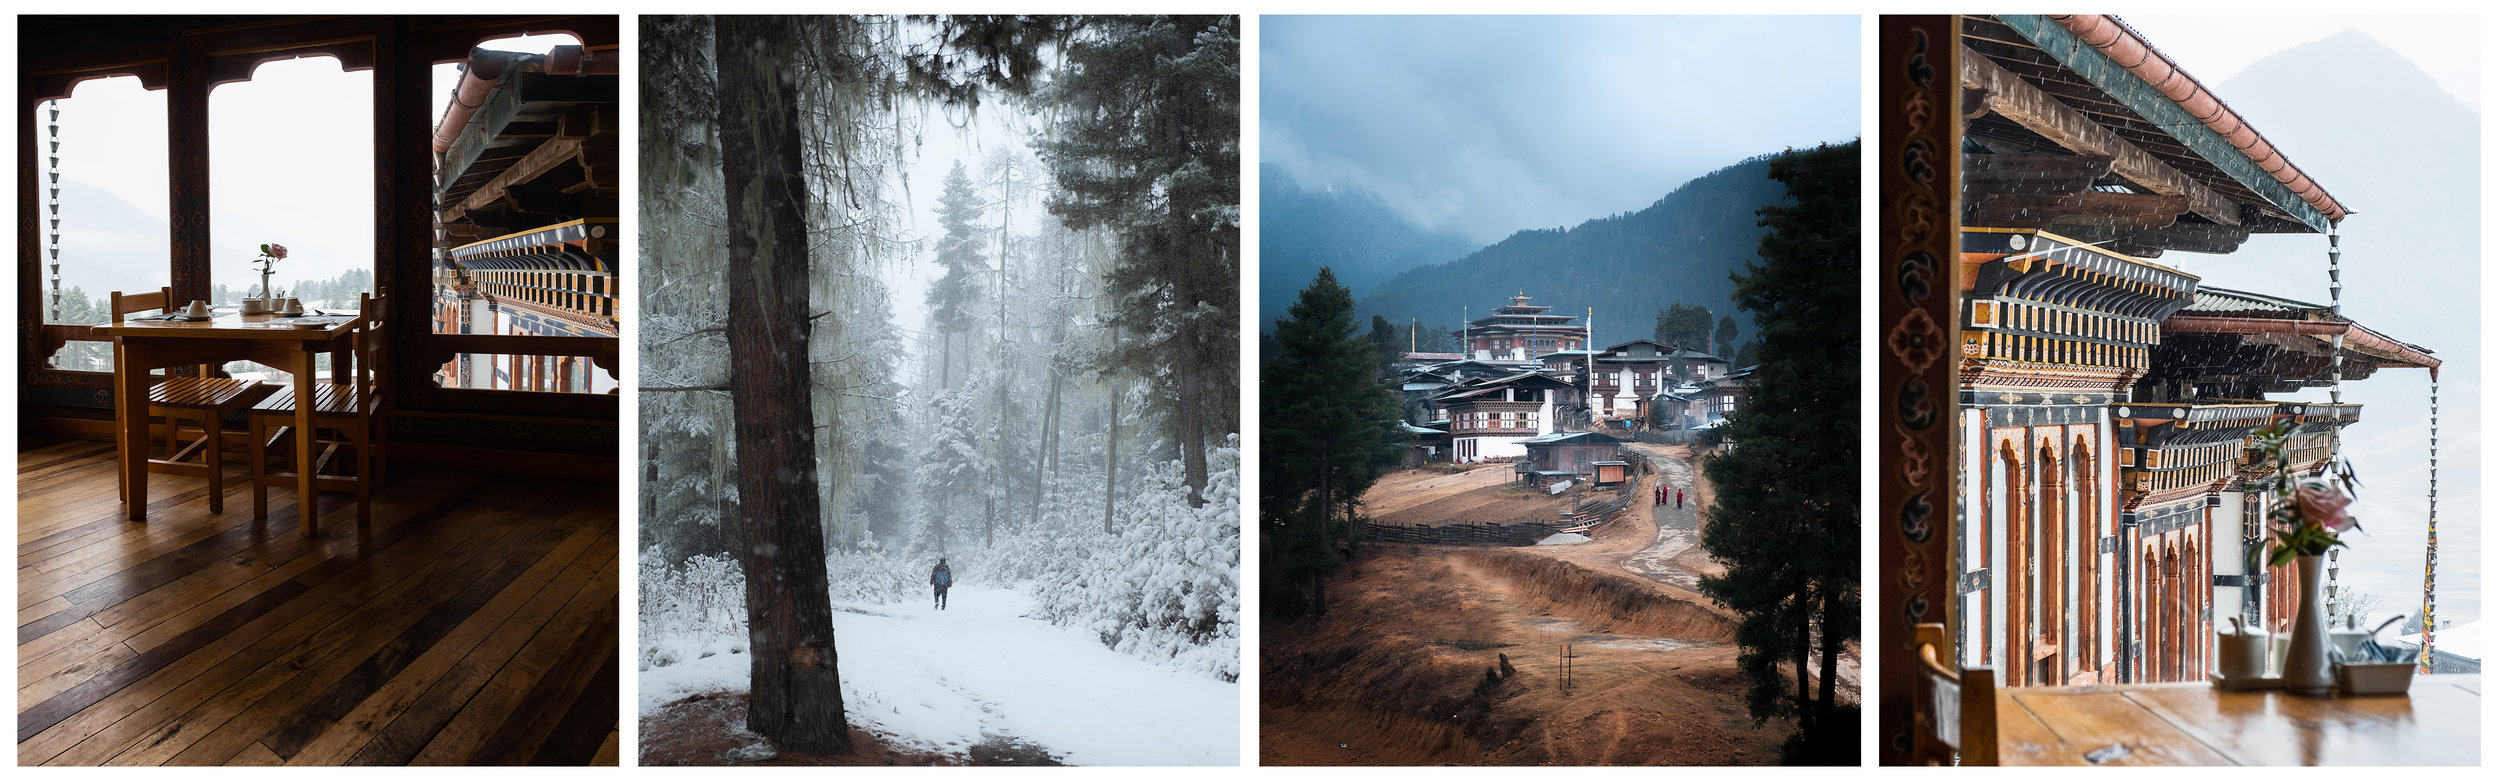 Breakfast hall, Snow covered pine forests, Gangtey Monastery, View from  Dewachen